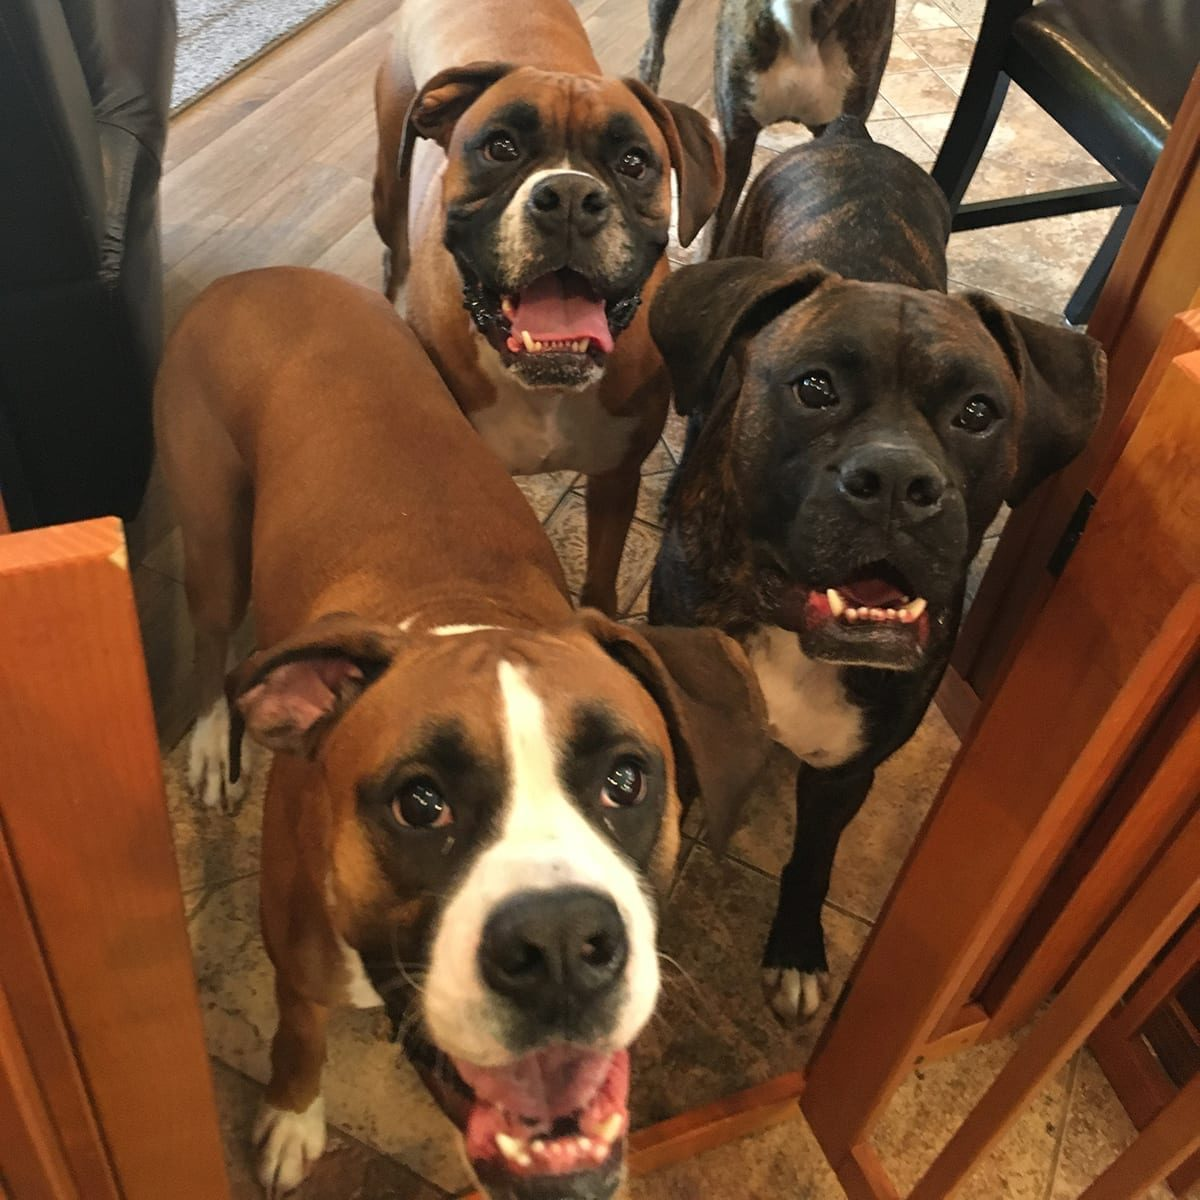 Puppy training: Well socialized dogs are a joy around the house